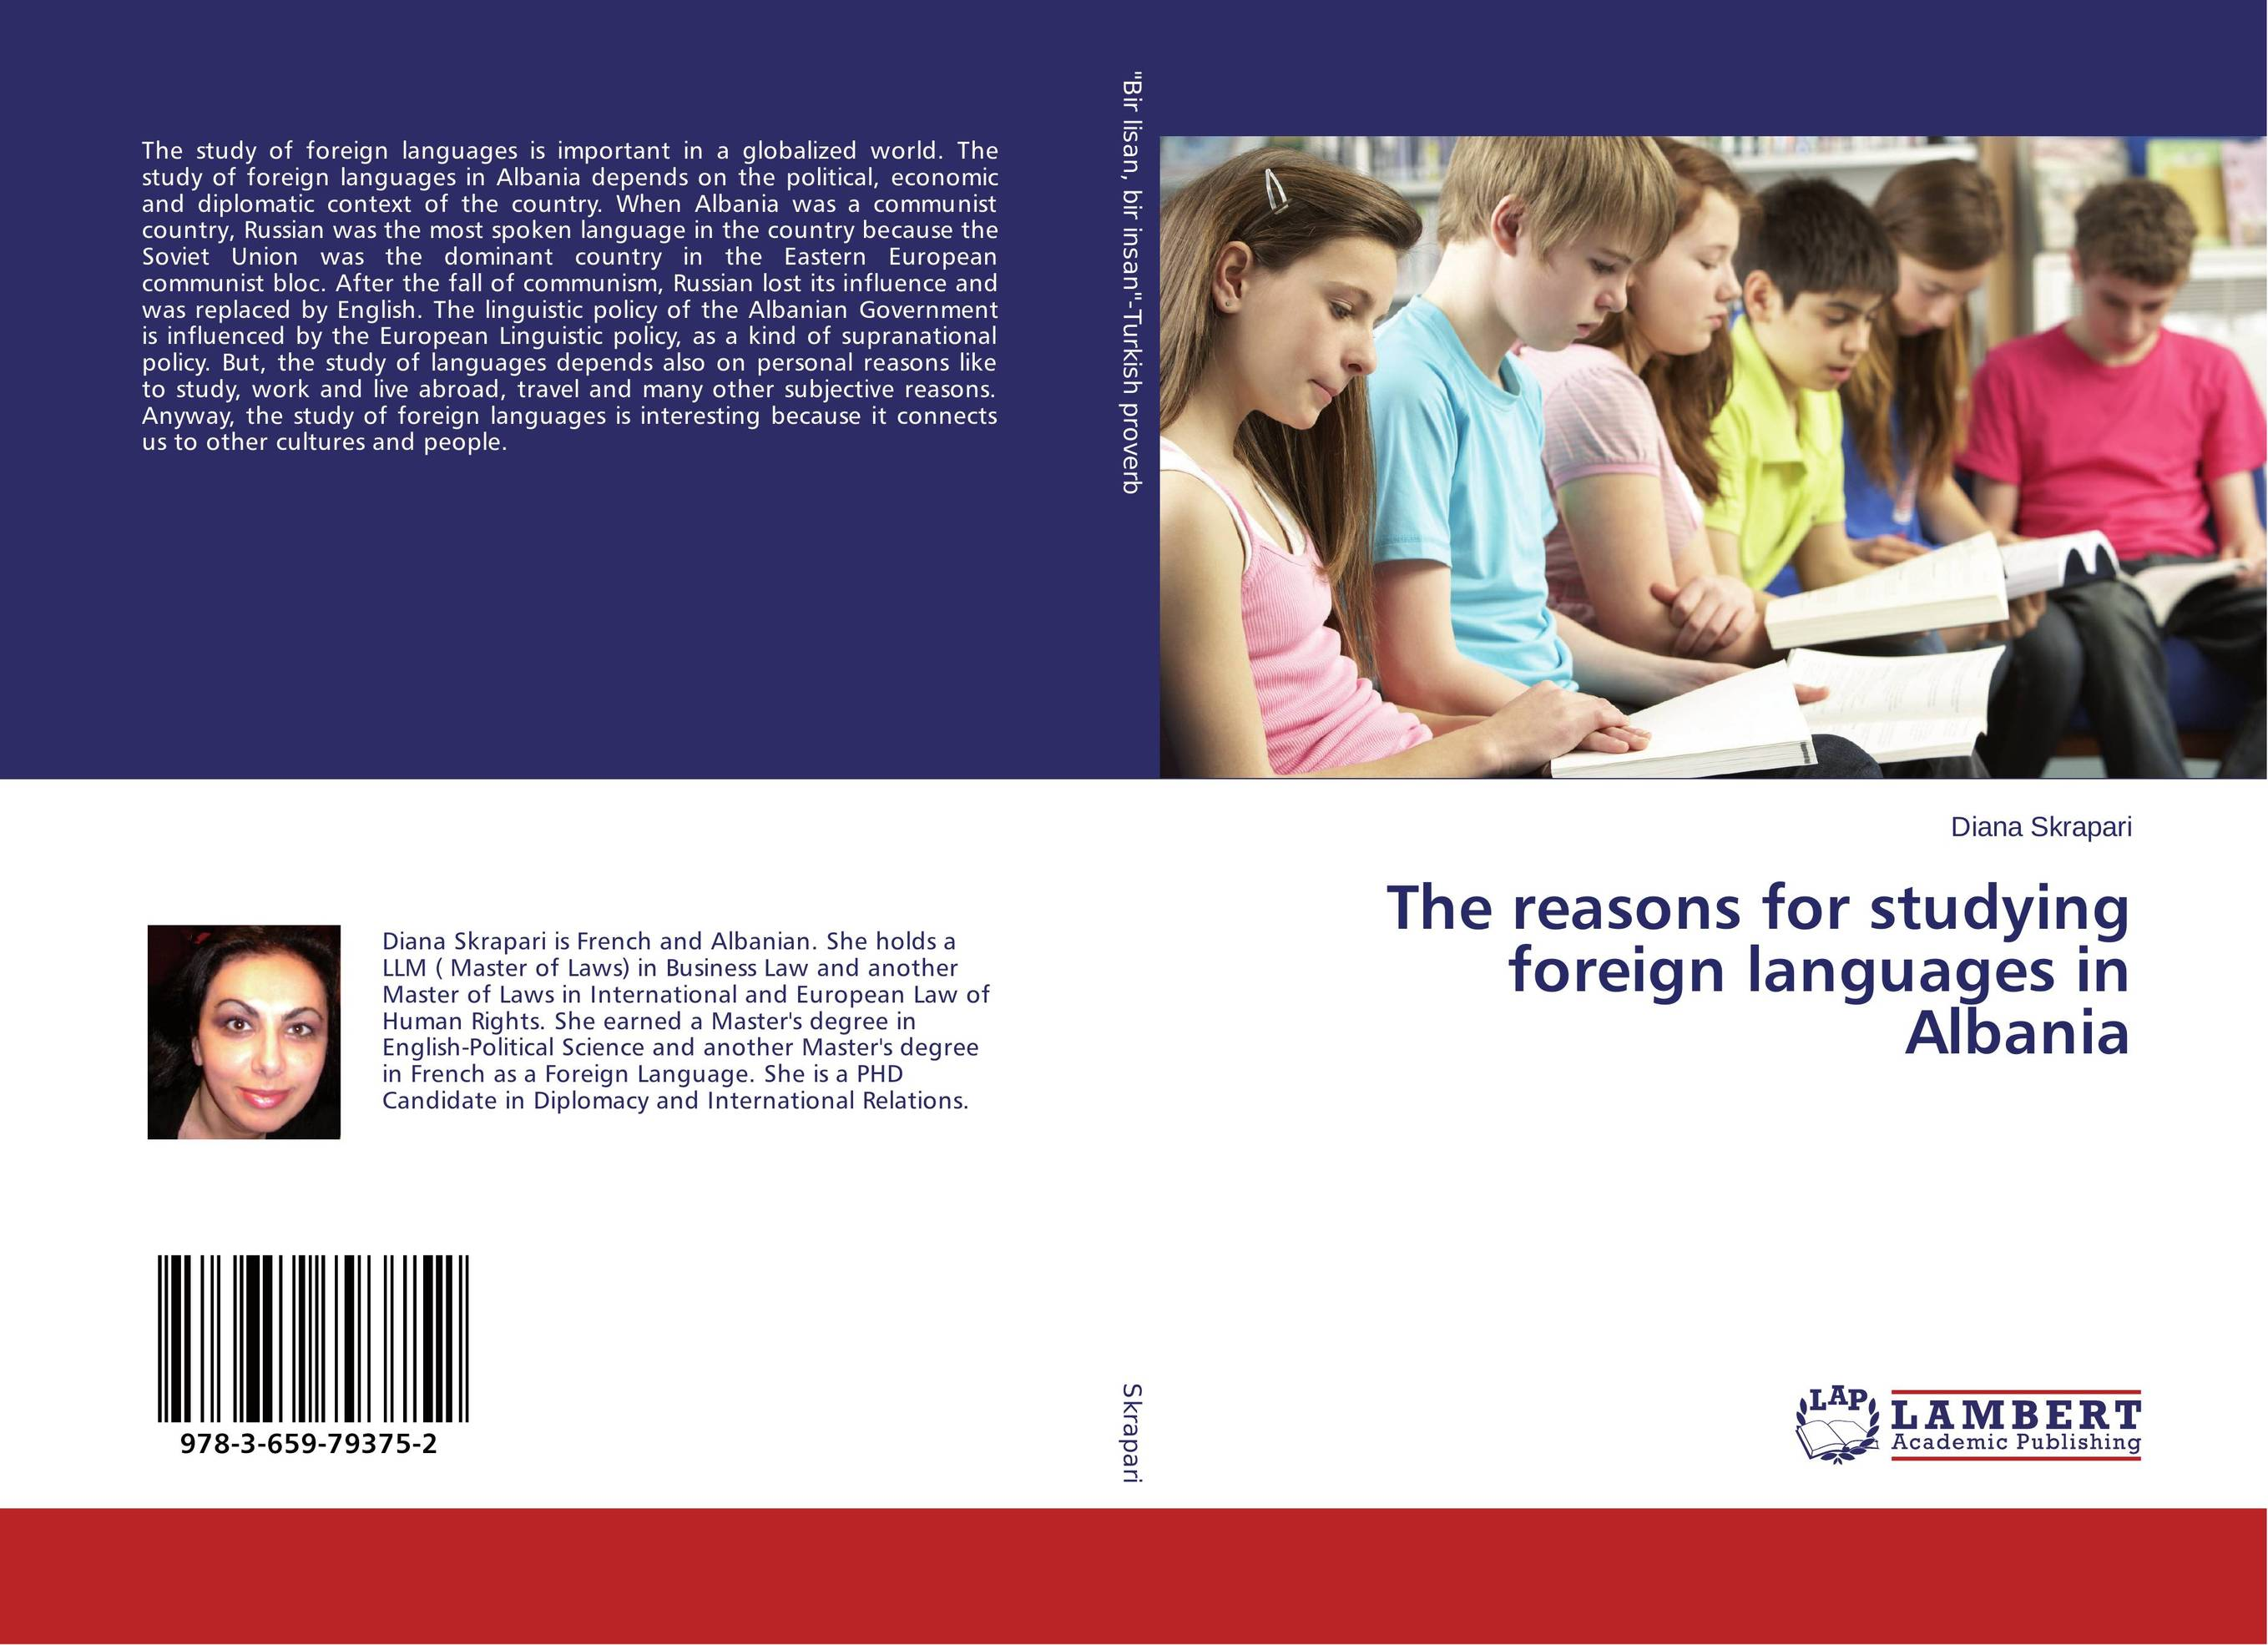 The reasons for studying foreign languages in Albania e hutchins culture and inference – a trobriand case study